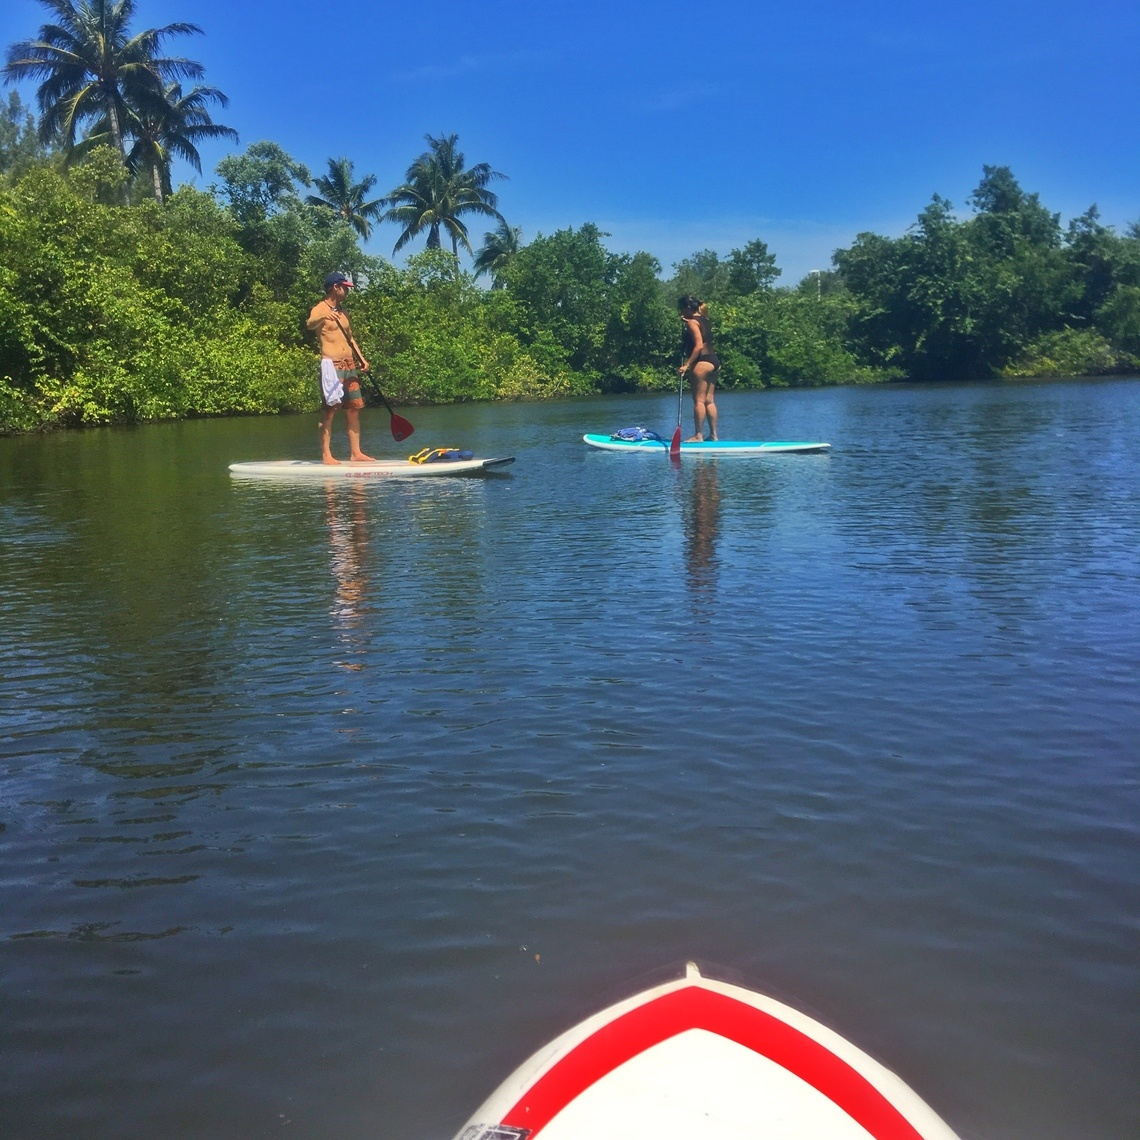 Paddle boarding in Jupiter's Intercoastal Waterway